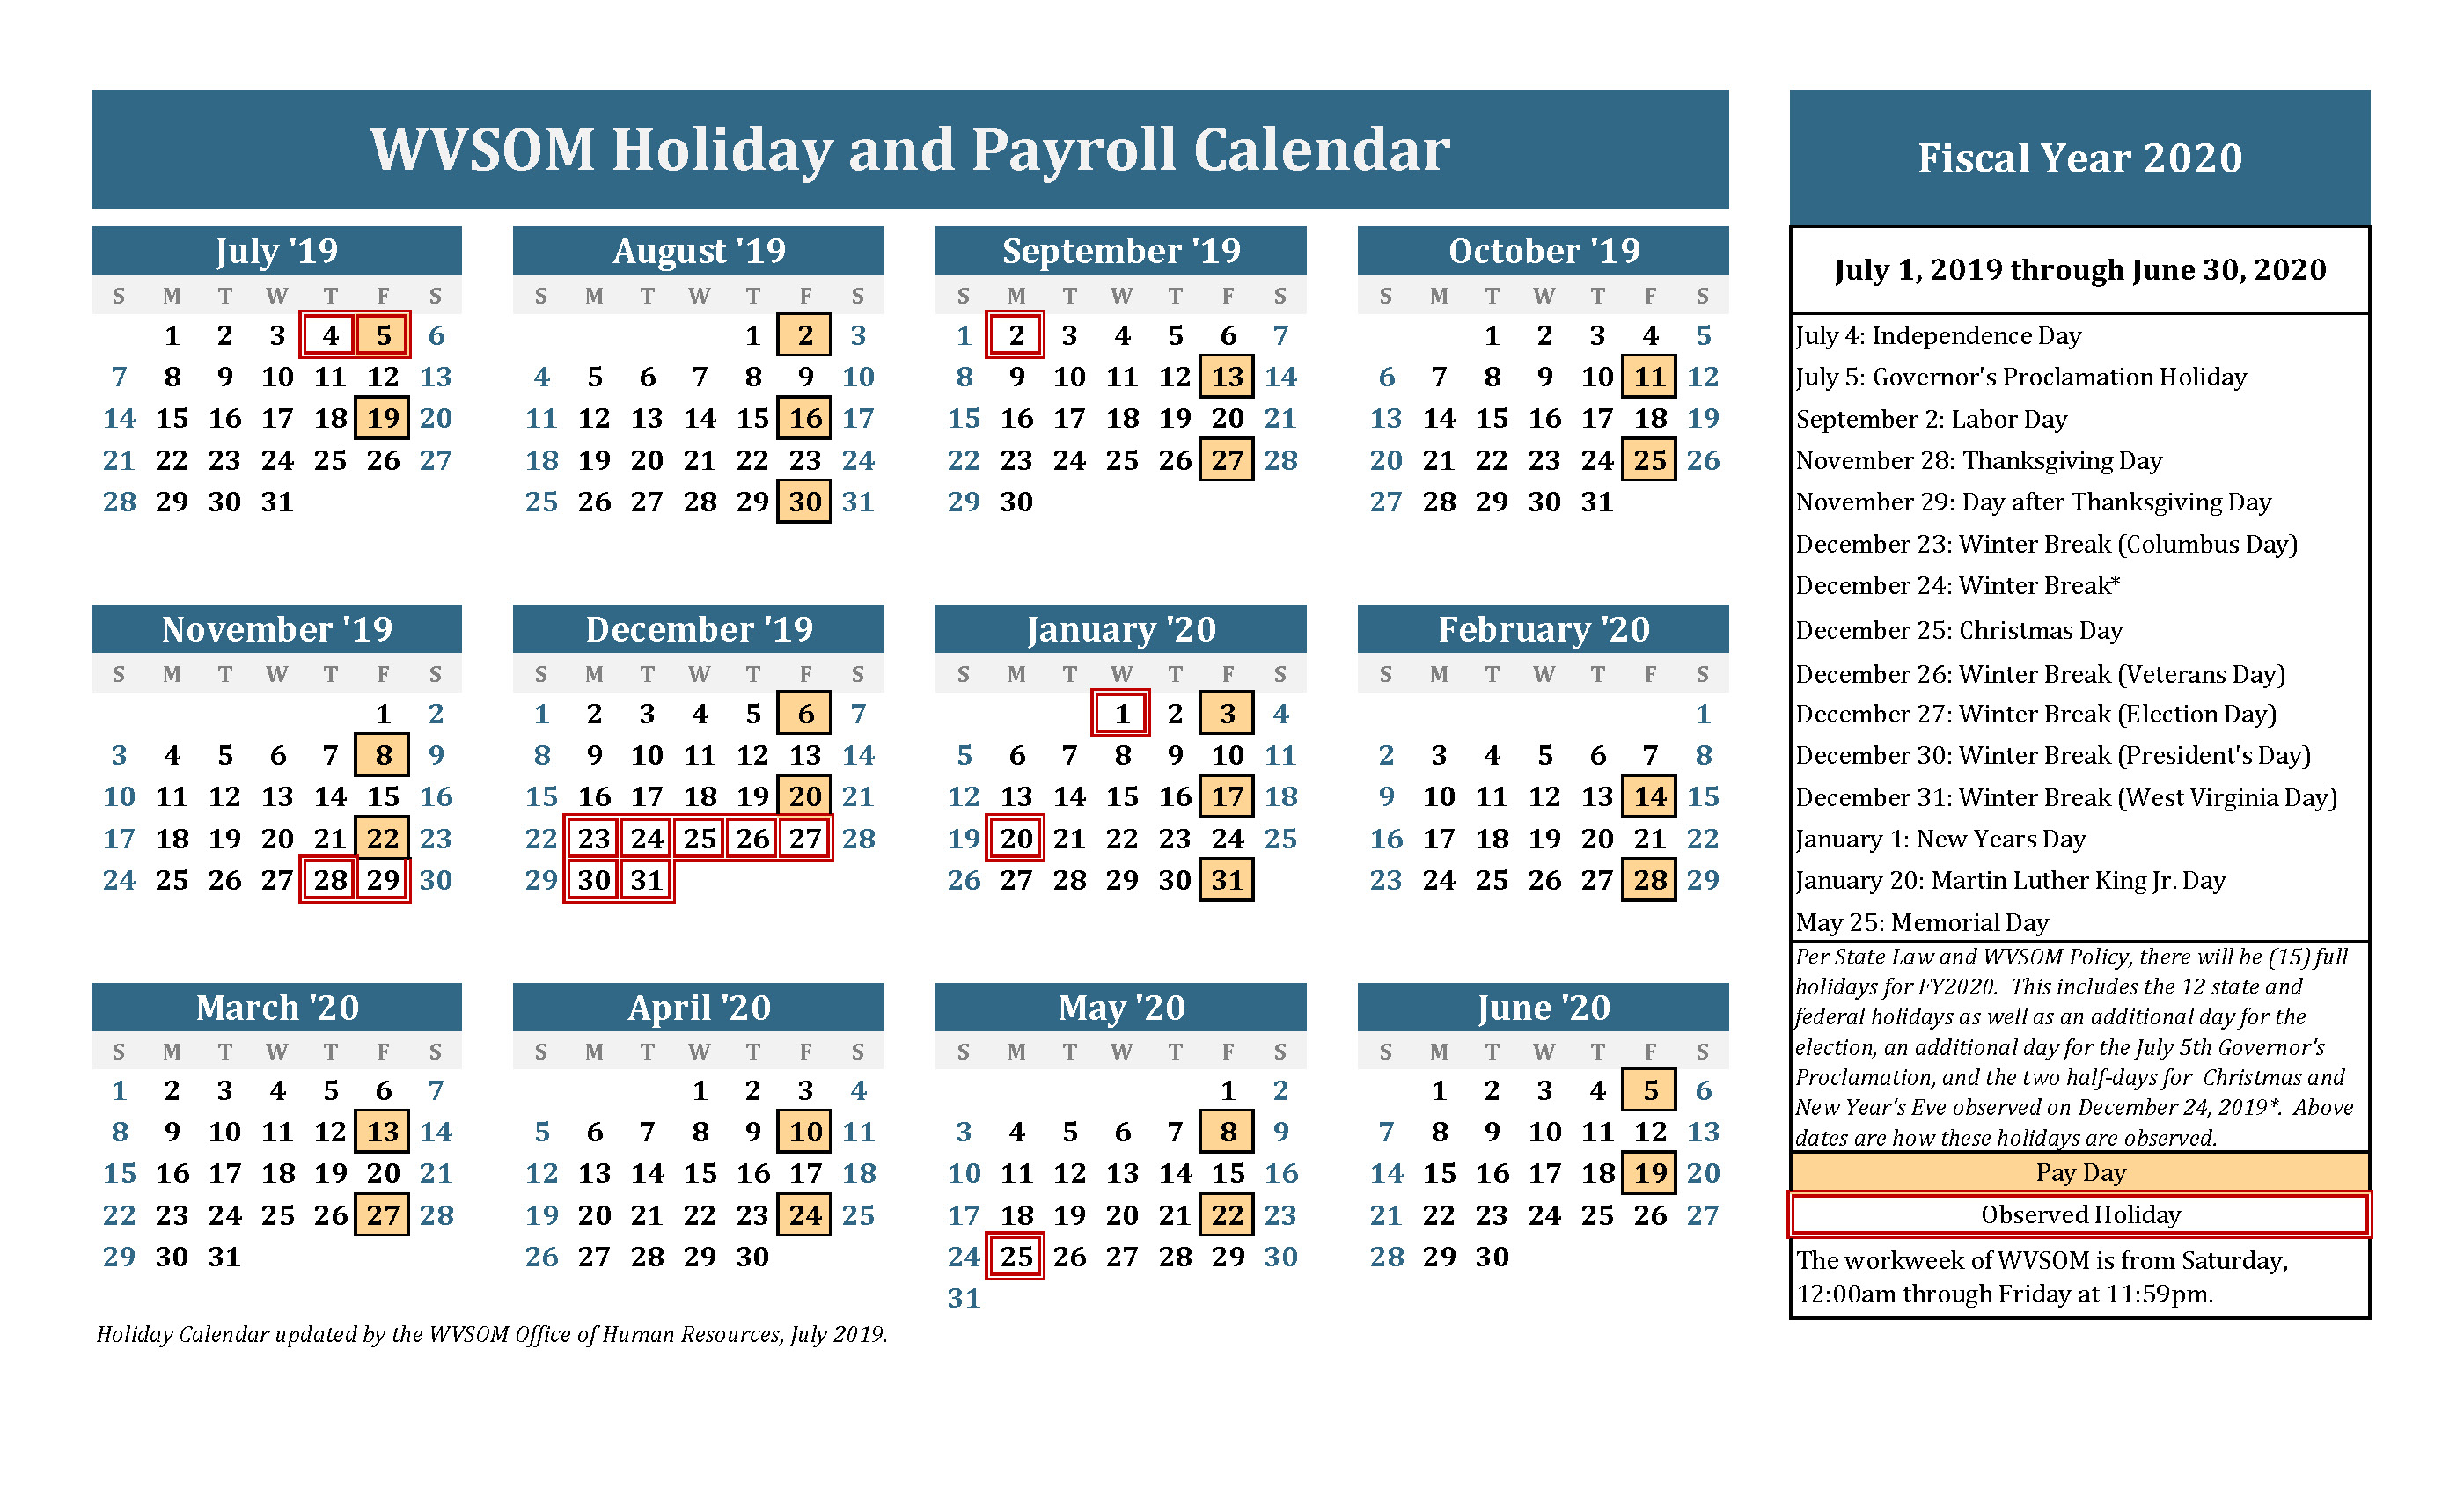 Human Resources - Holiday Calendar   West Virginia School Of for Payroll And Holiday Calendar 2020